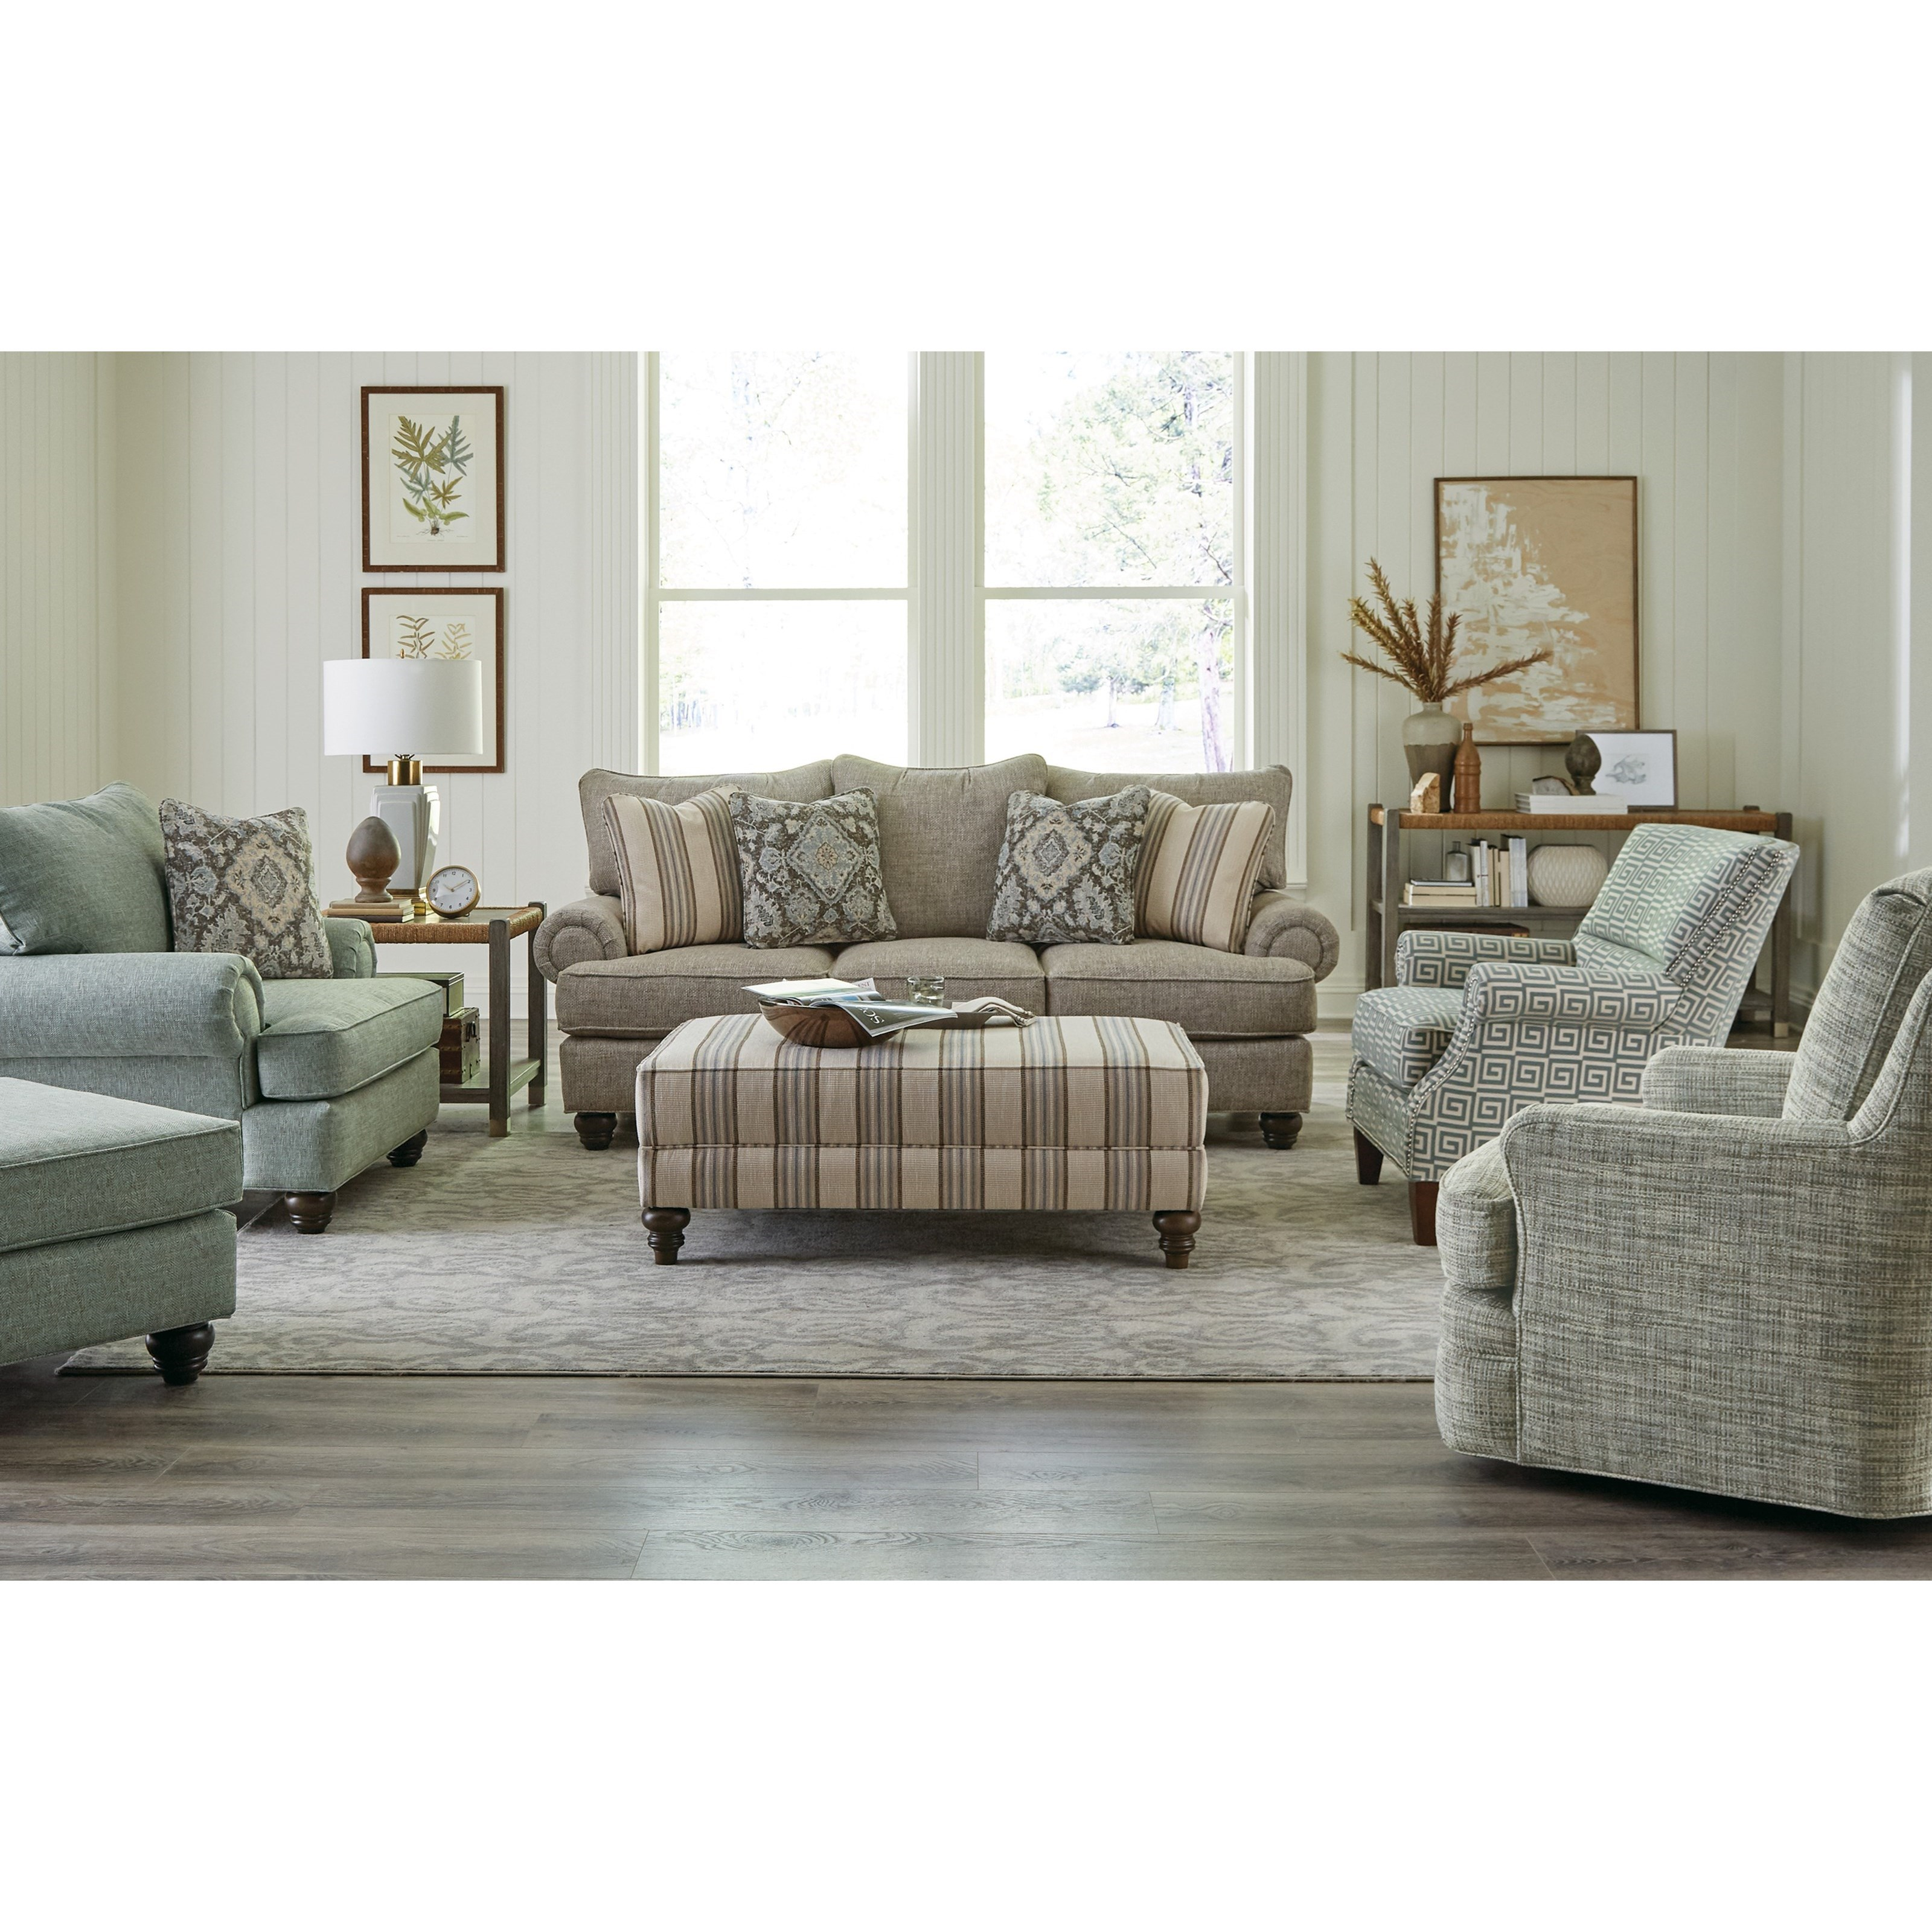 700450 Living Room Group by Craftmaster at Turk Furniture